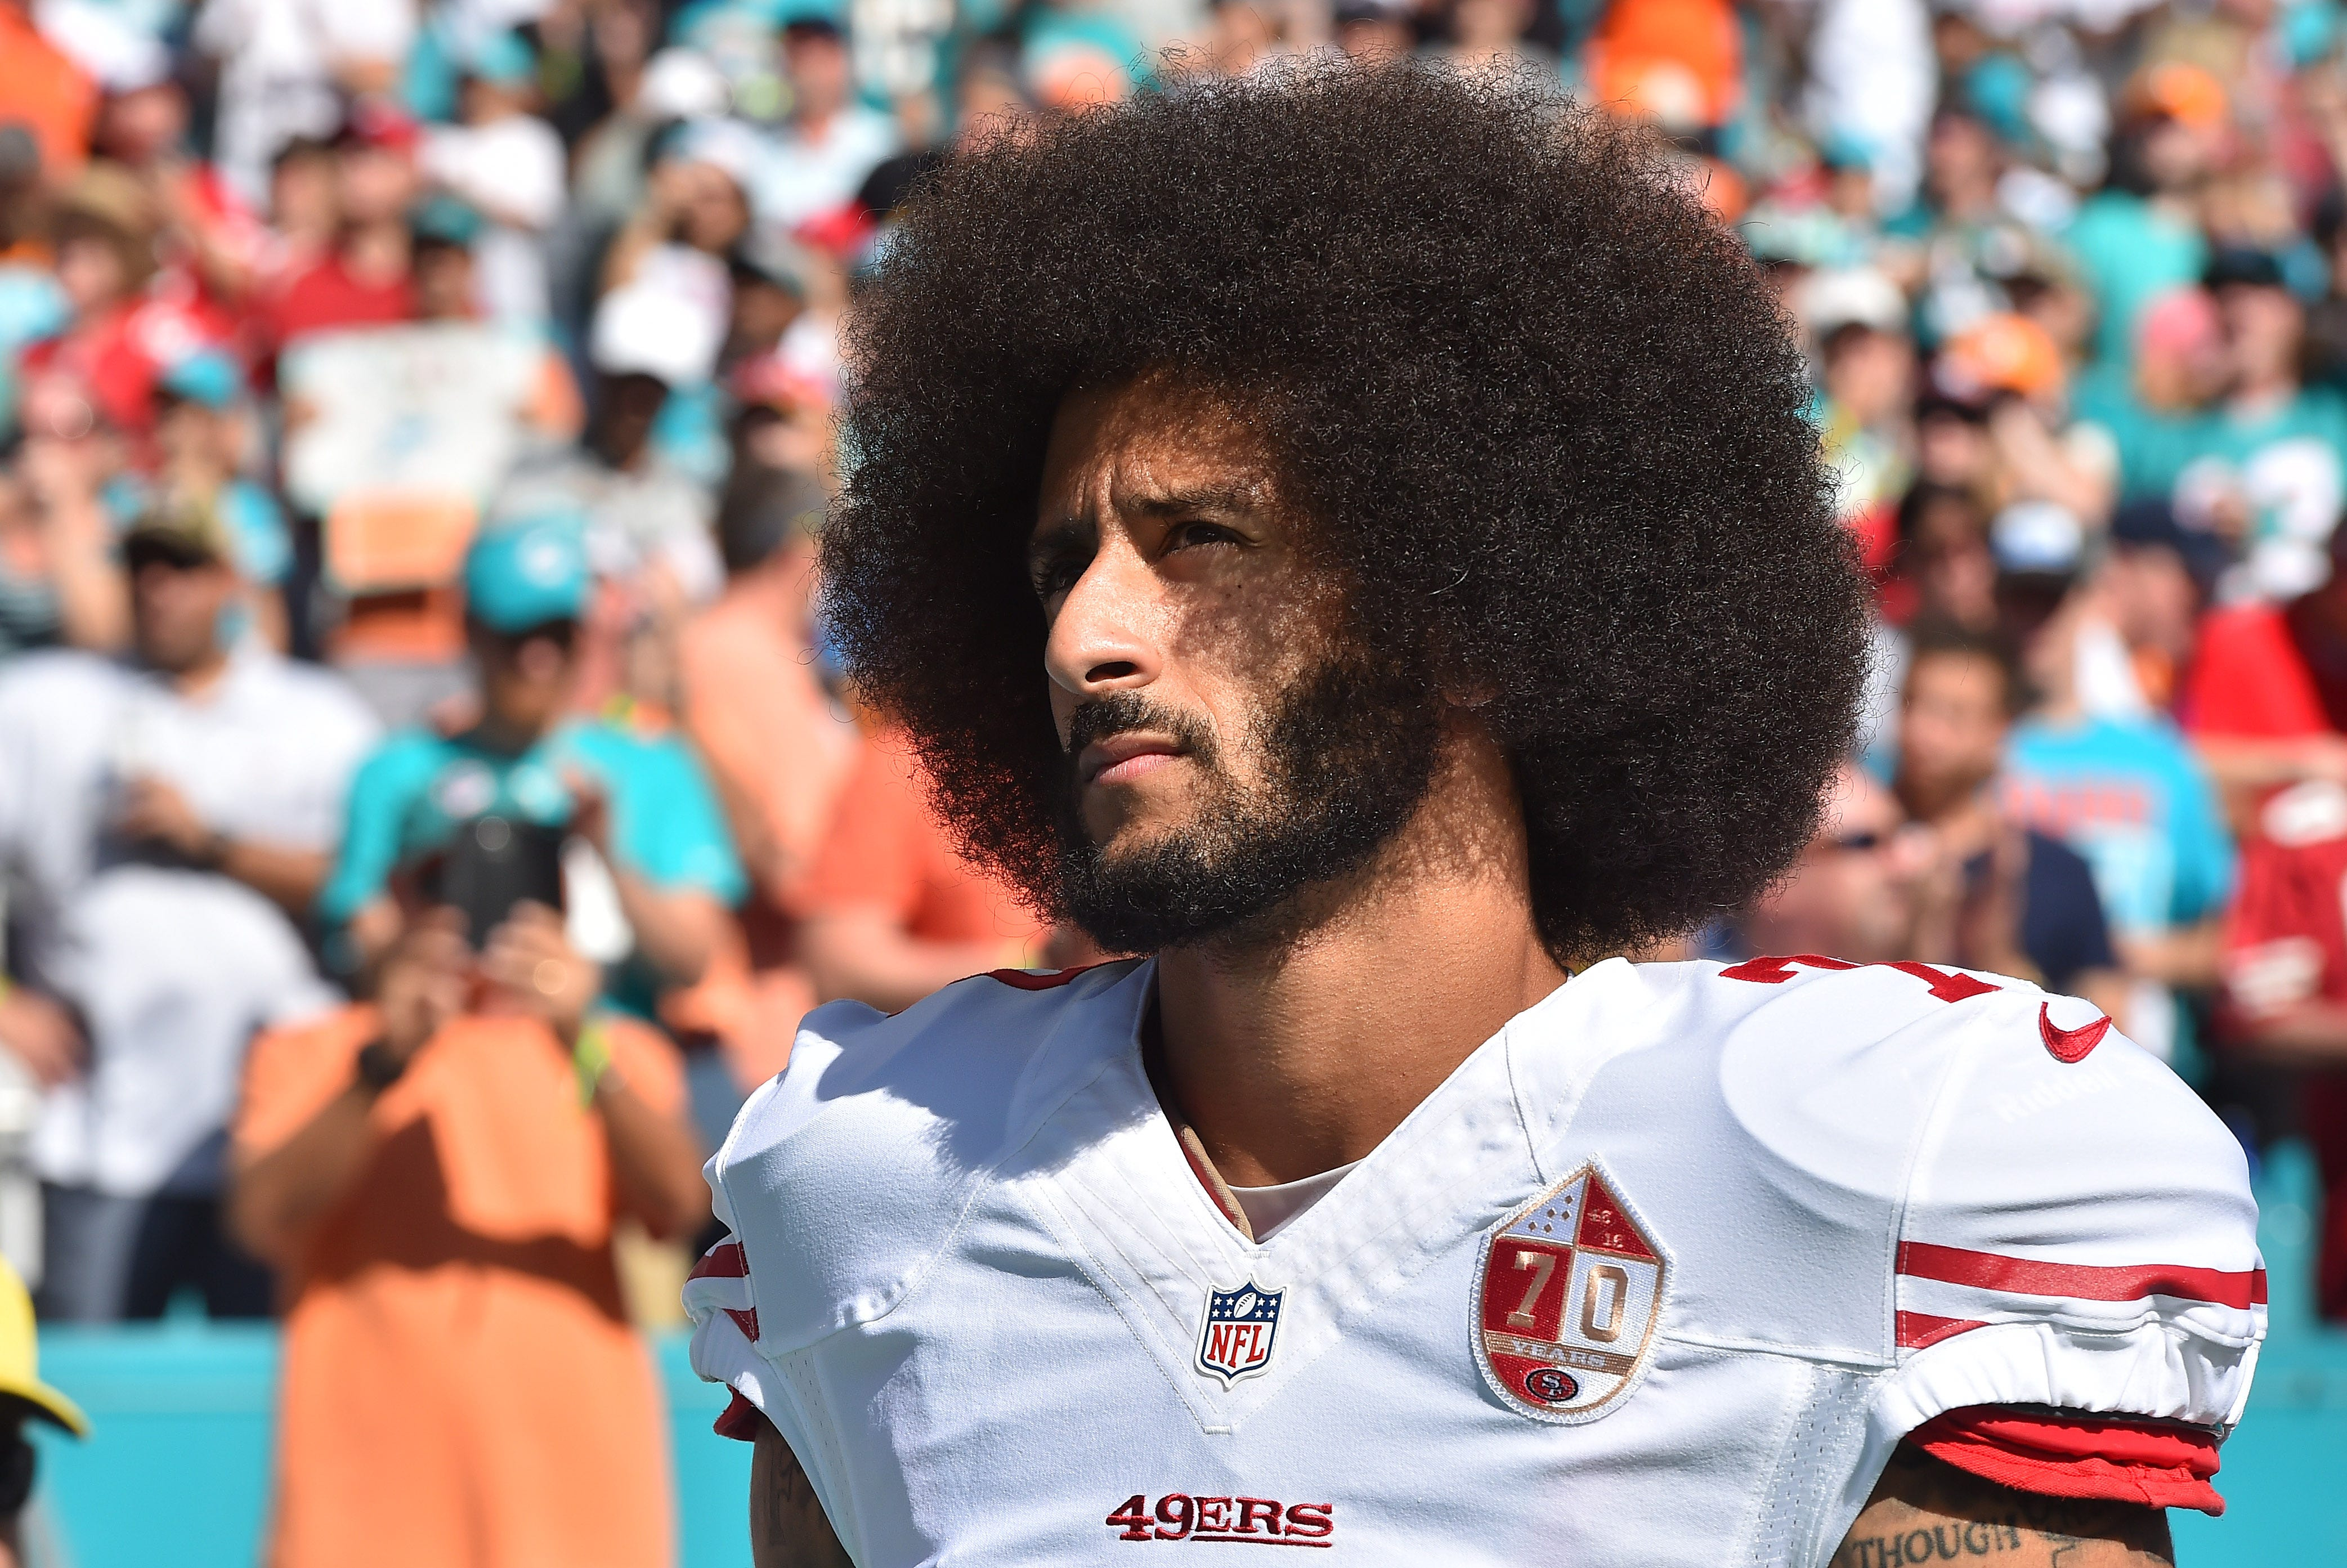 Wisconsin GOP lawmakers force Colin Kaepernick's name out of Black History resolution